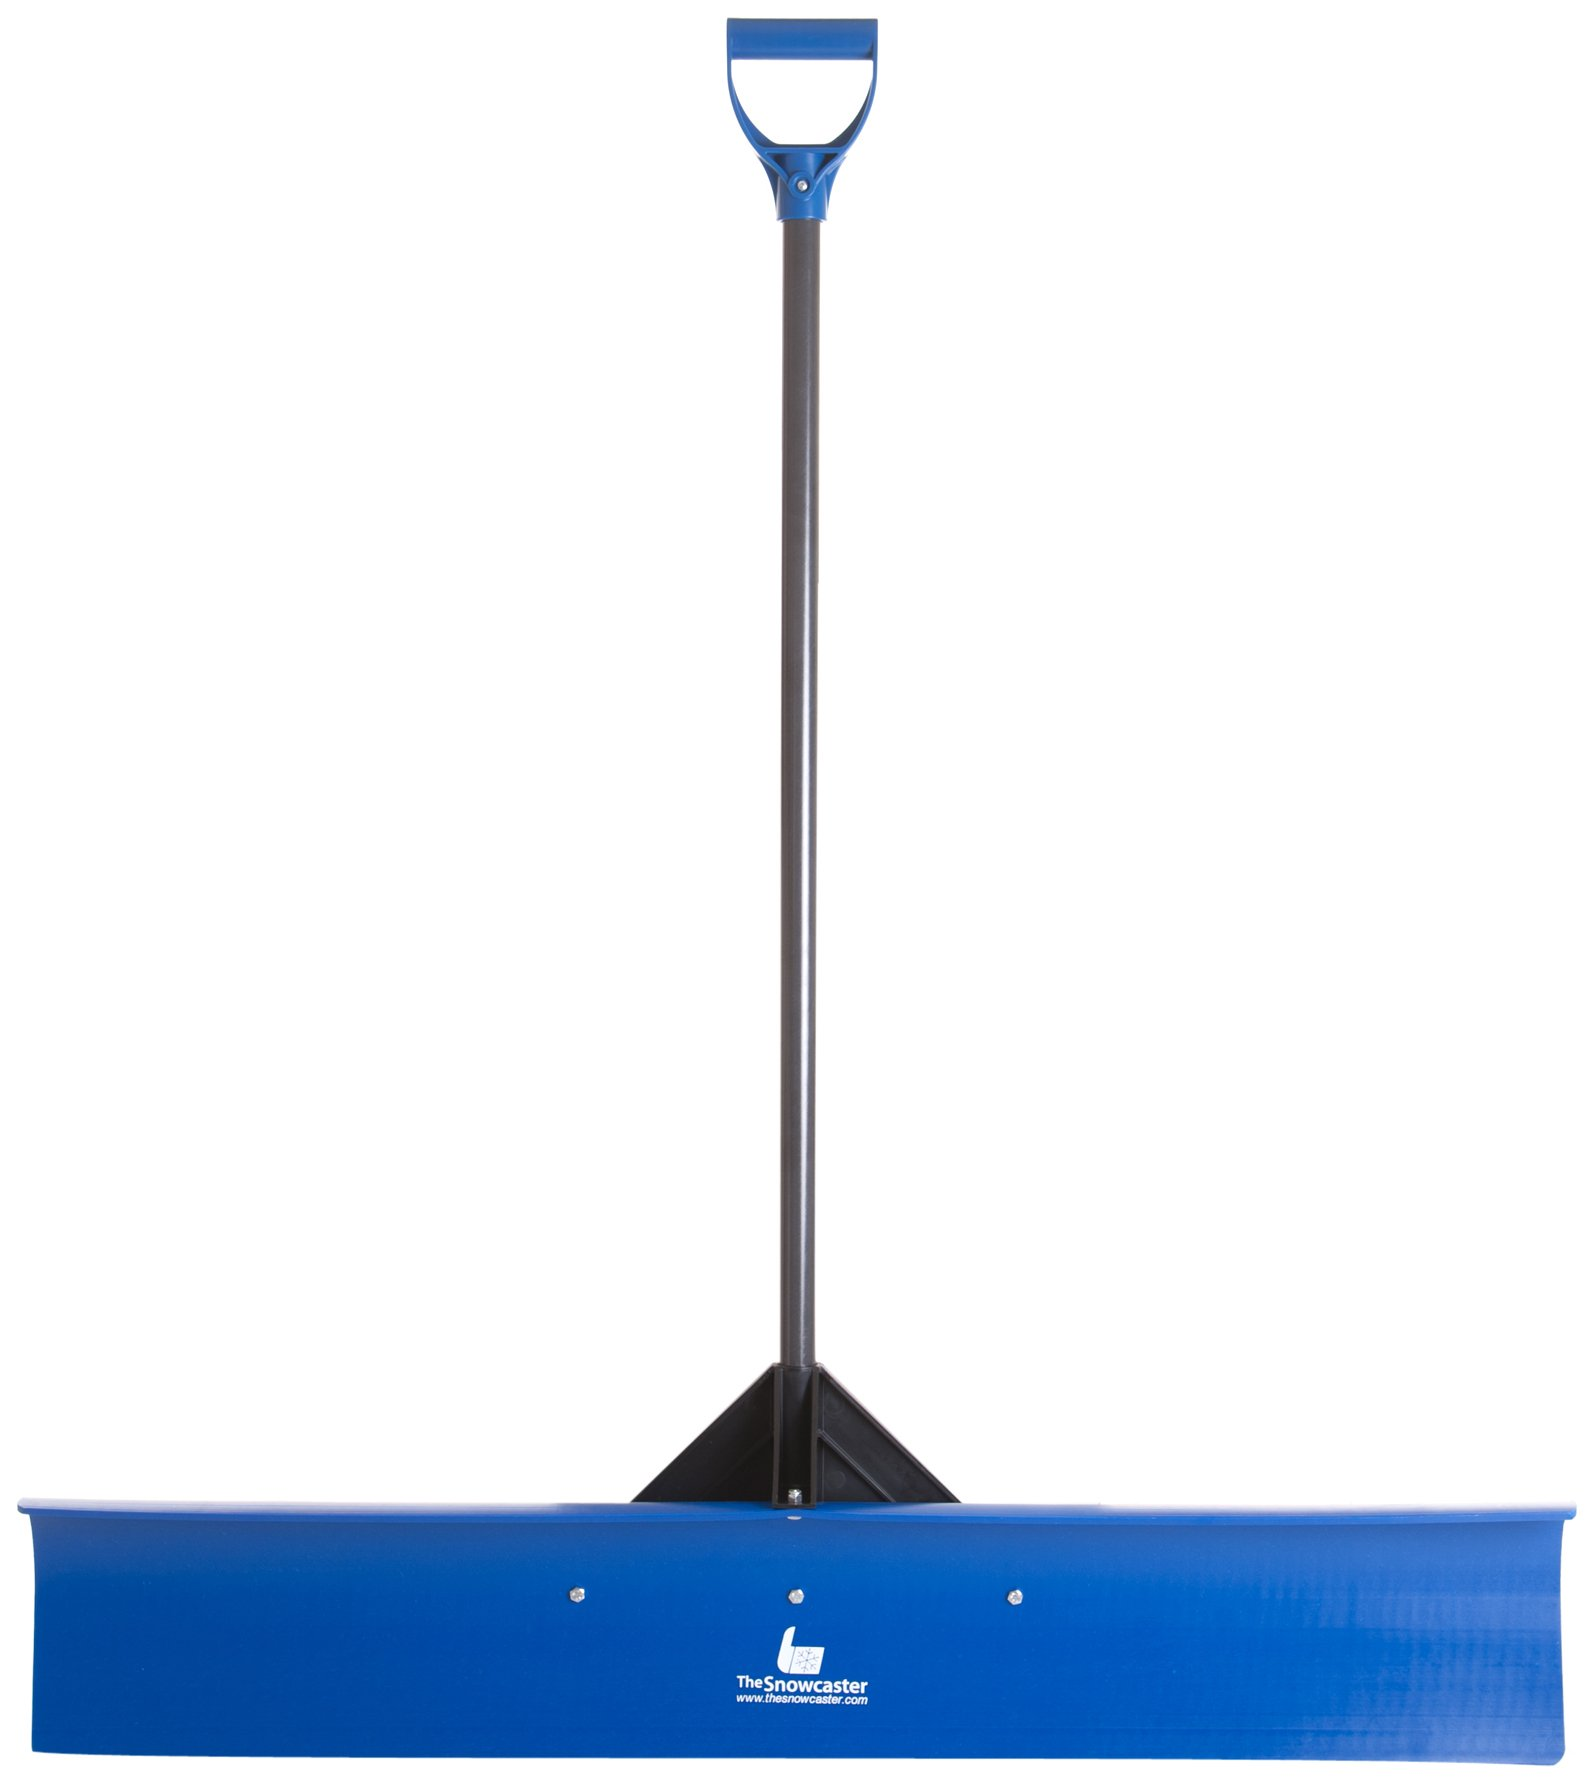 The Snowcaster 48UPH Pusher Shovel with 48-Inch Heavy Duty Plastic Blade, Blue by The Snowcaster (Image #1)